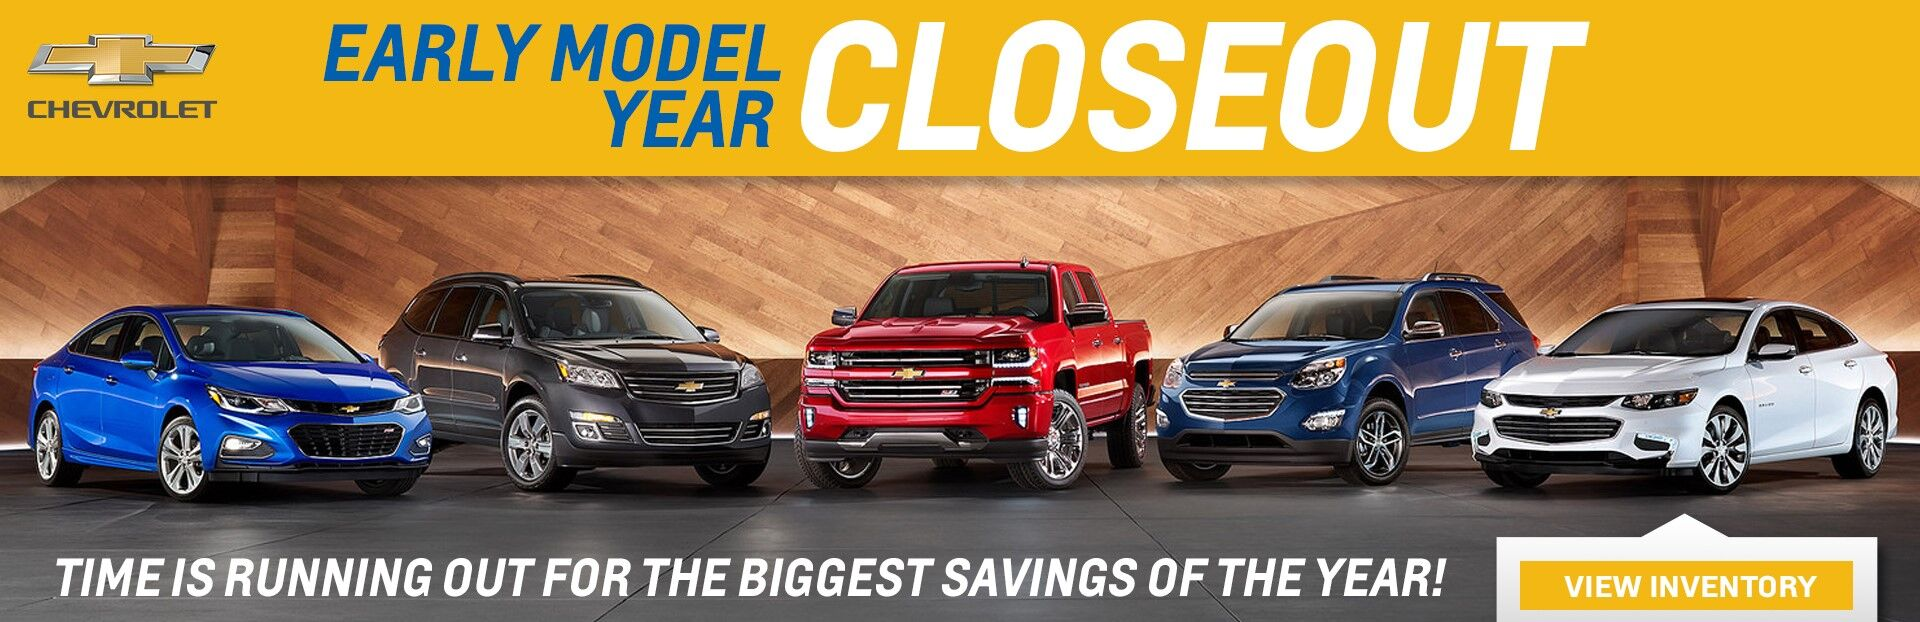 Chevrolet Early Model Year CLOSEOUT